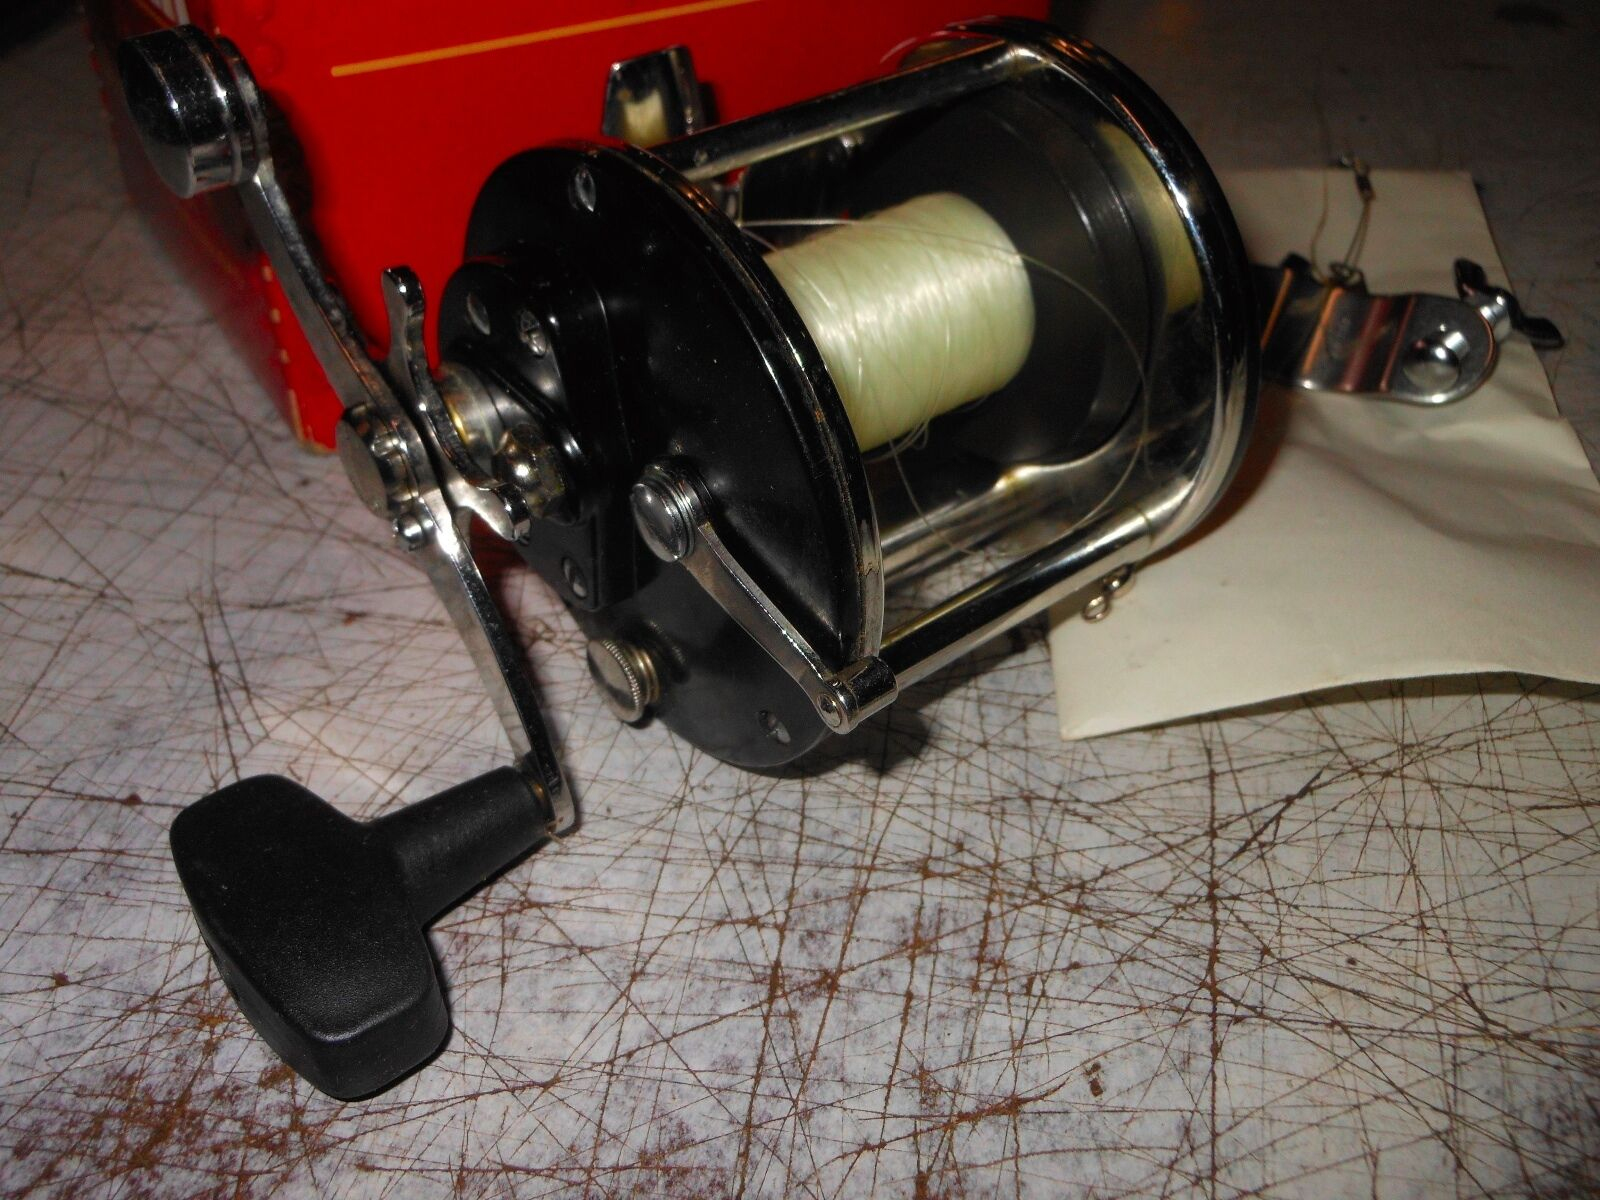 Penn Fishing reel Vintage with the box and instructions